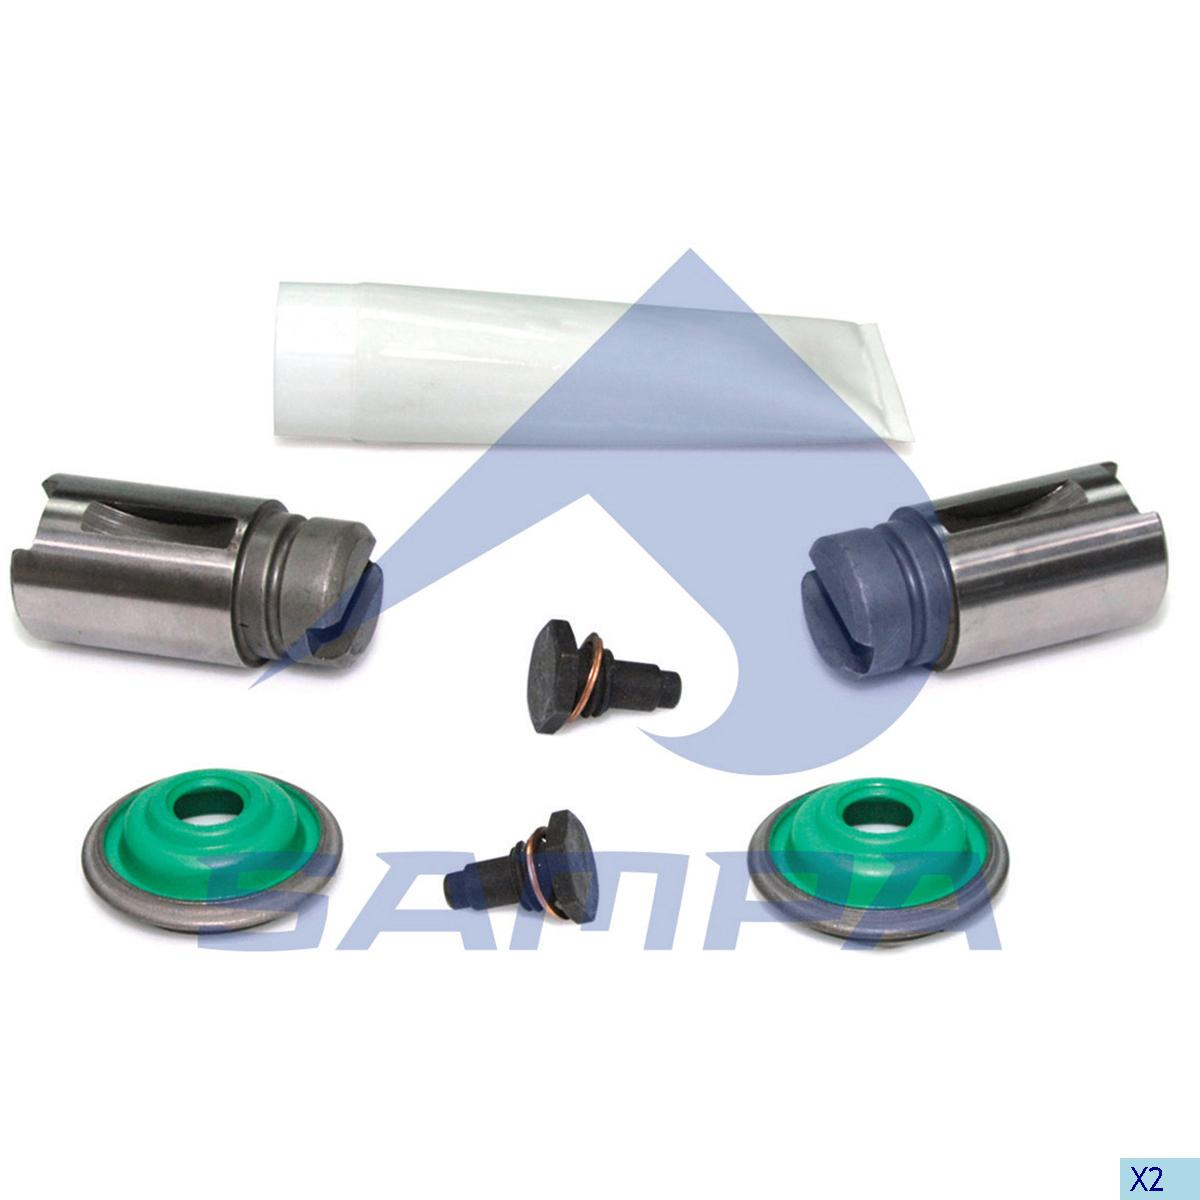 Repair Kit, Brake Adjuster, Iveco, Brake